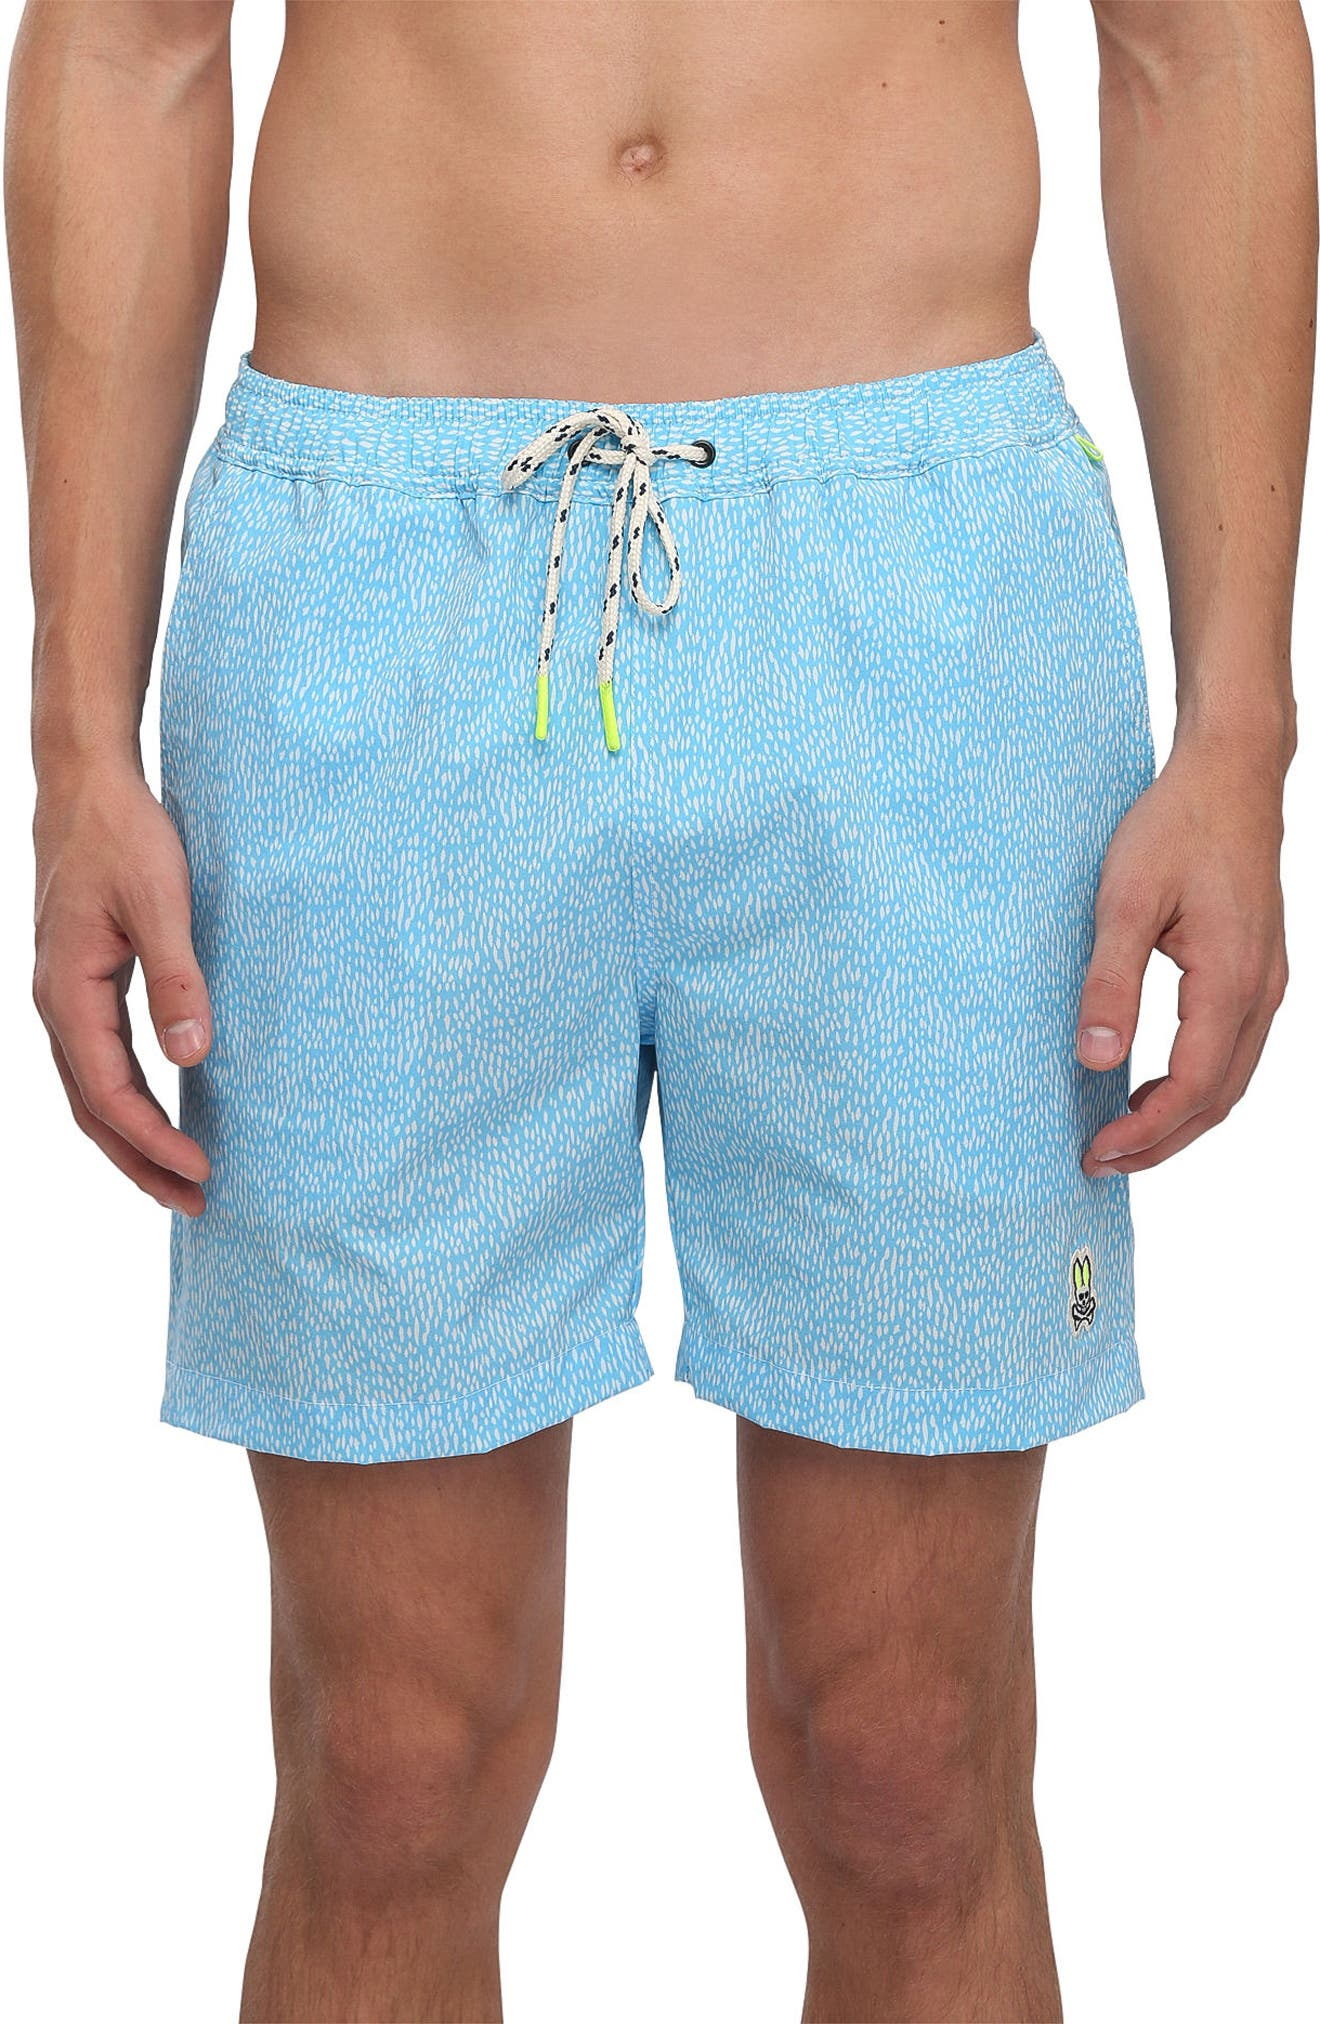 Swim Shorts,                             Main thumbnail 1, color,                             472